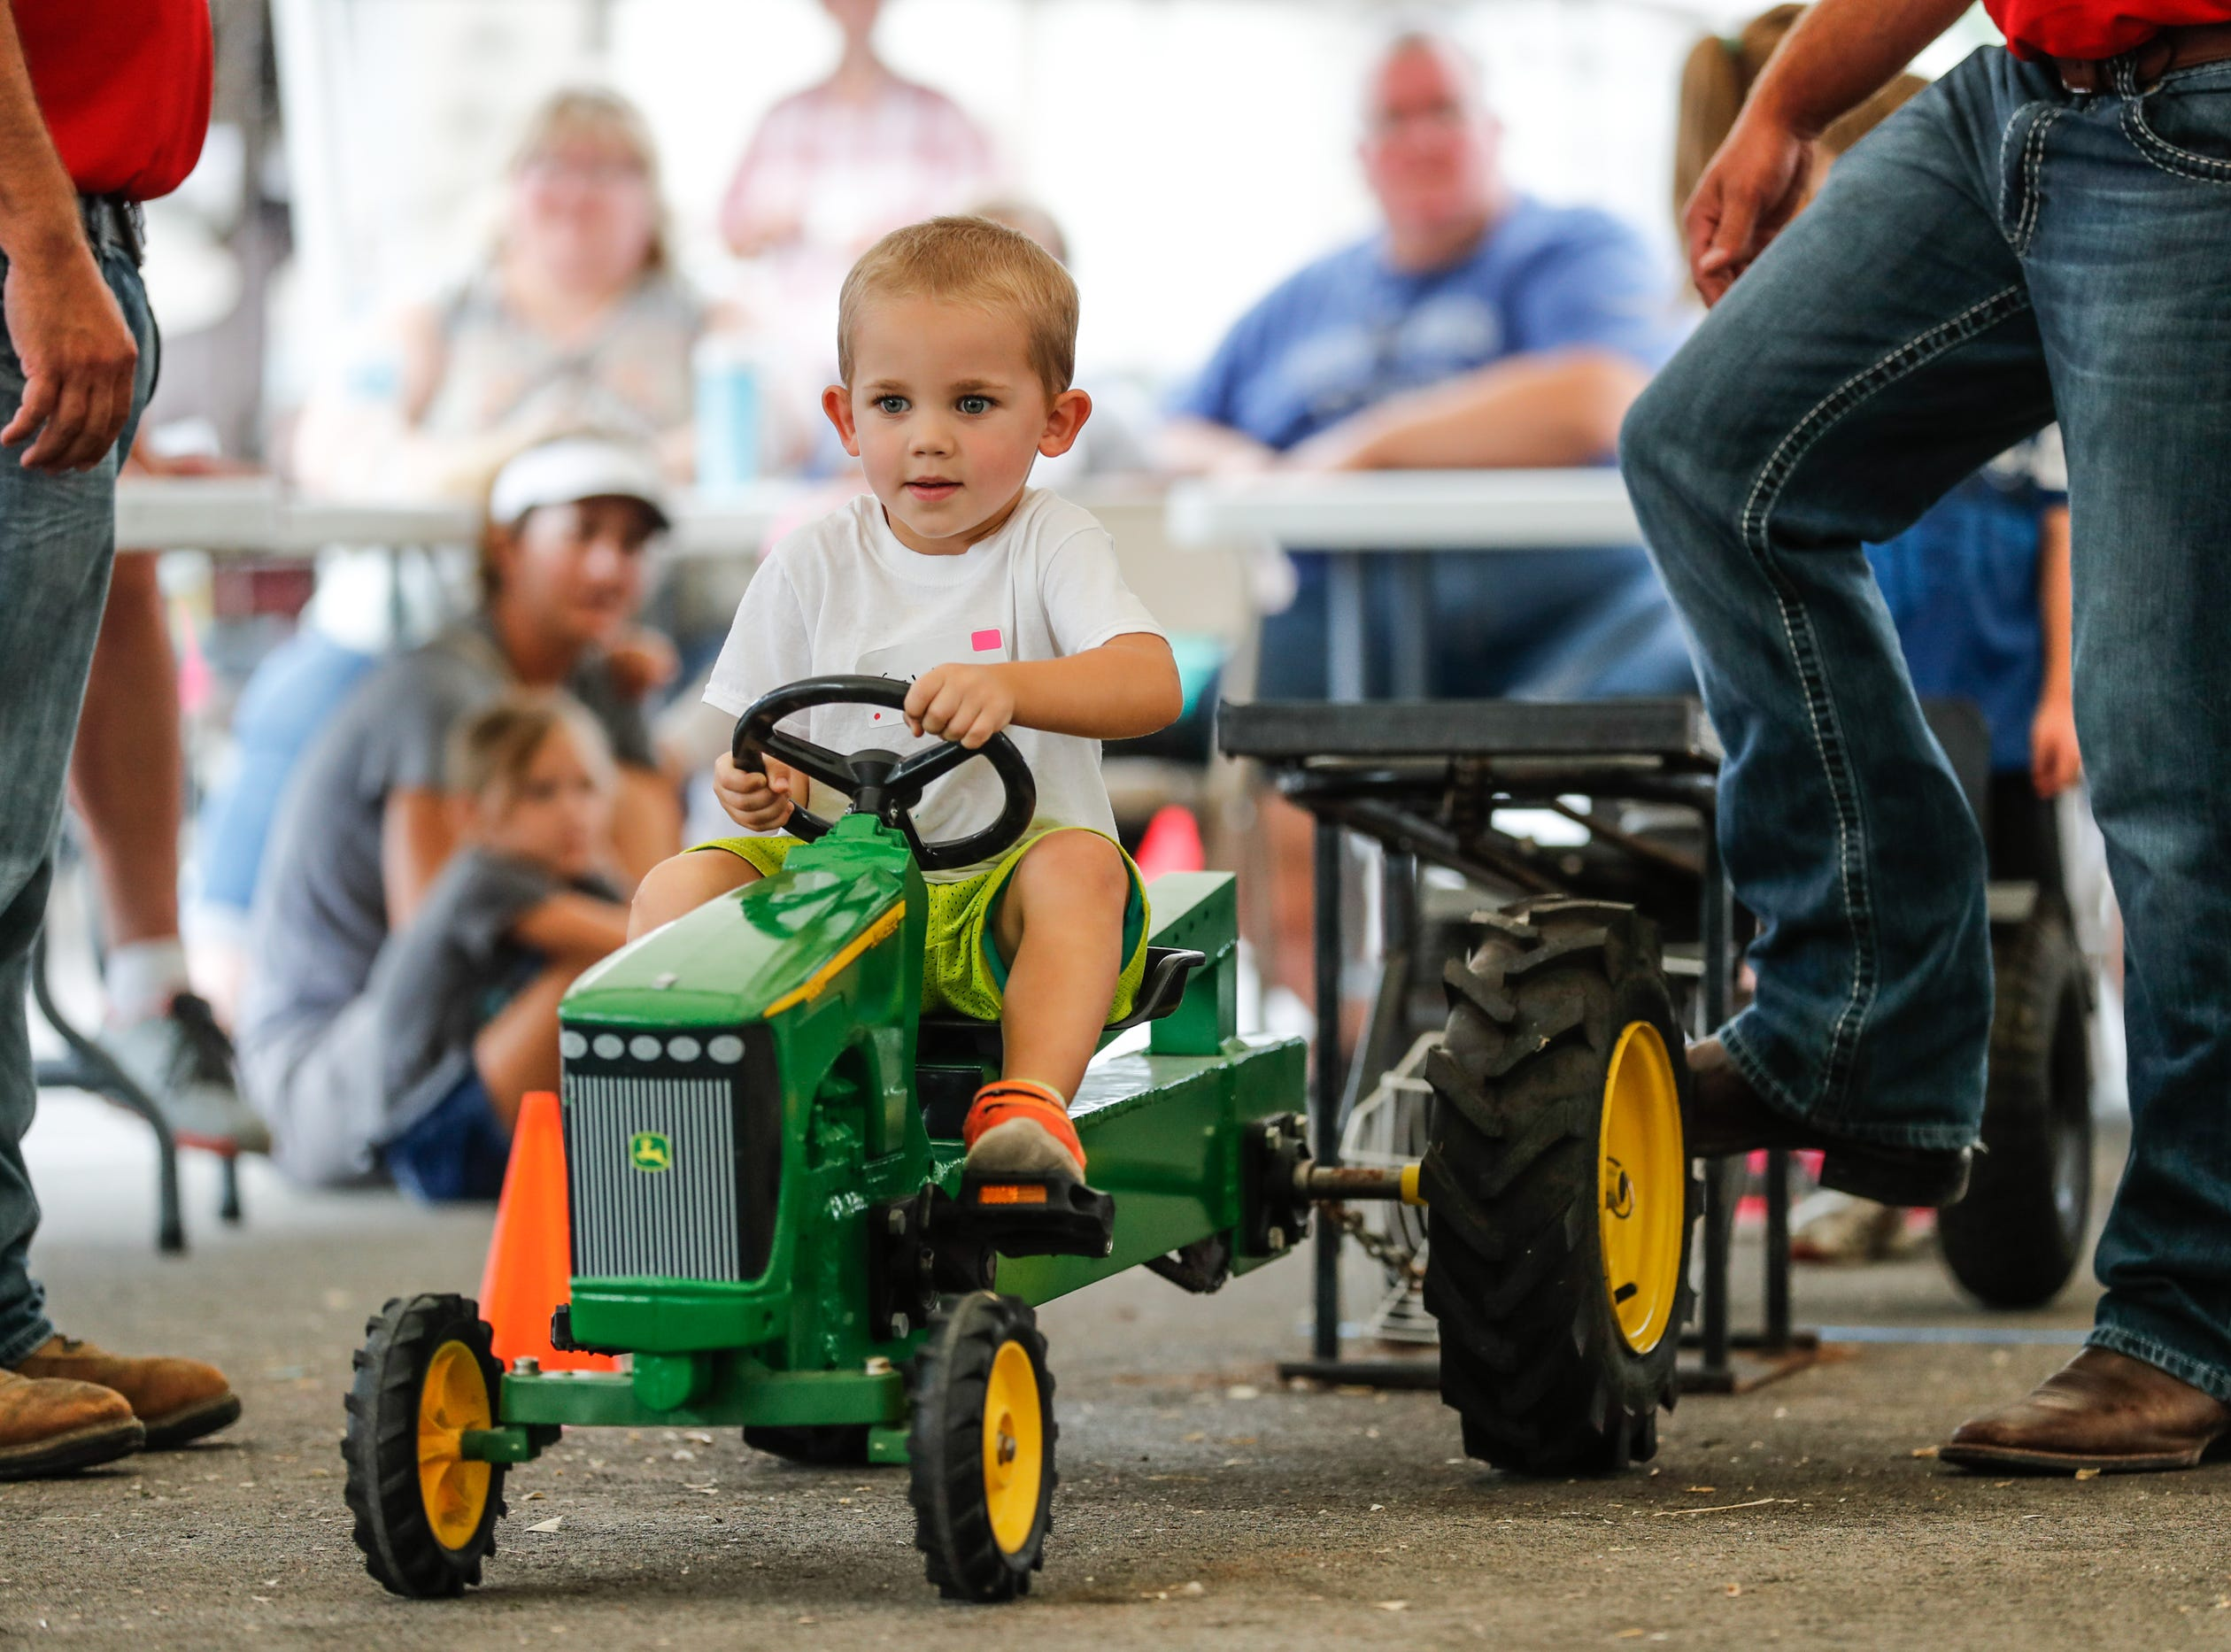 Caleb Lehman competes in the youth pedal tractor pull during the Hamilton County Fair, held at the Hamilton County 4-H Fairgrounds on Sunday, July 22, 2018.